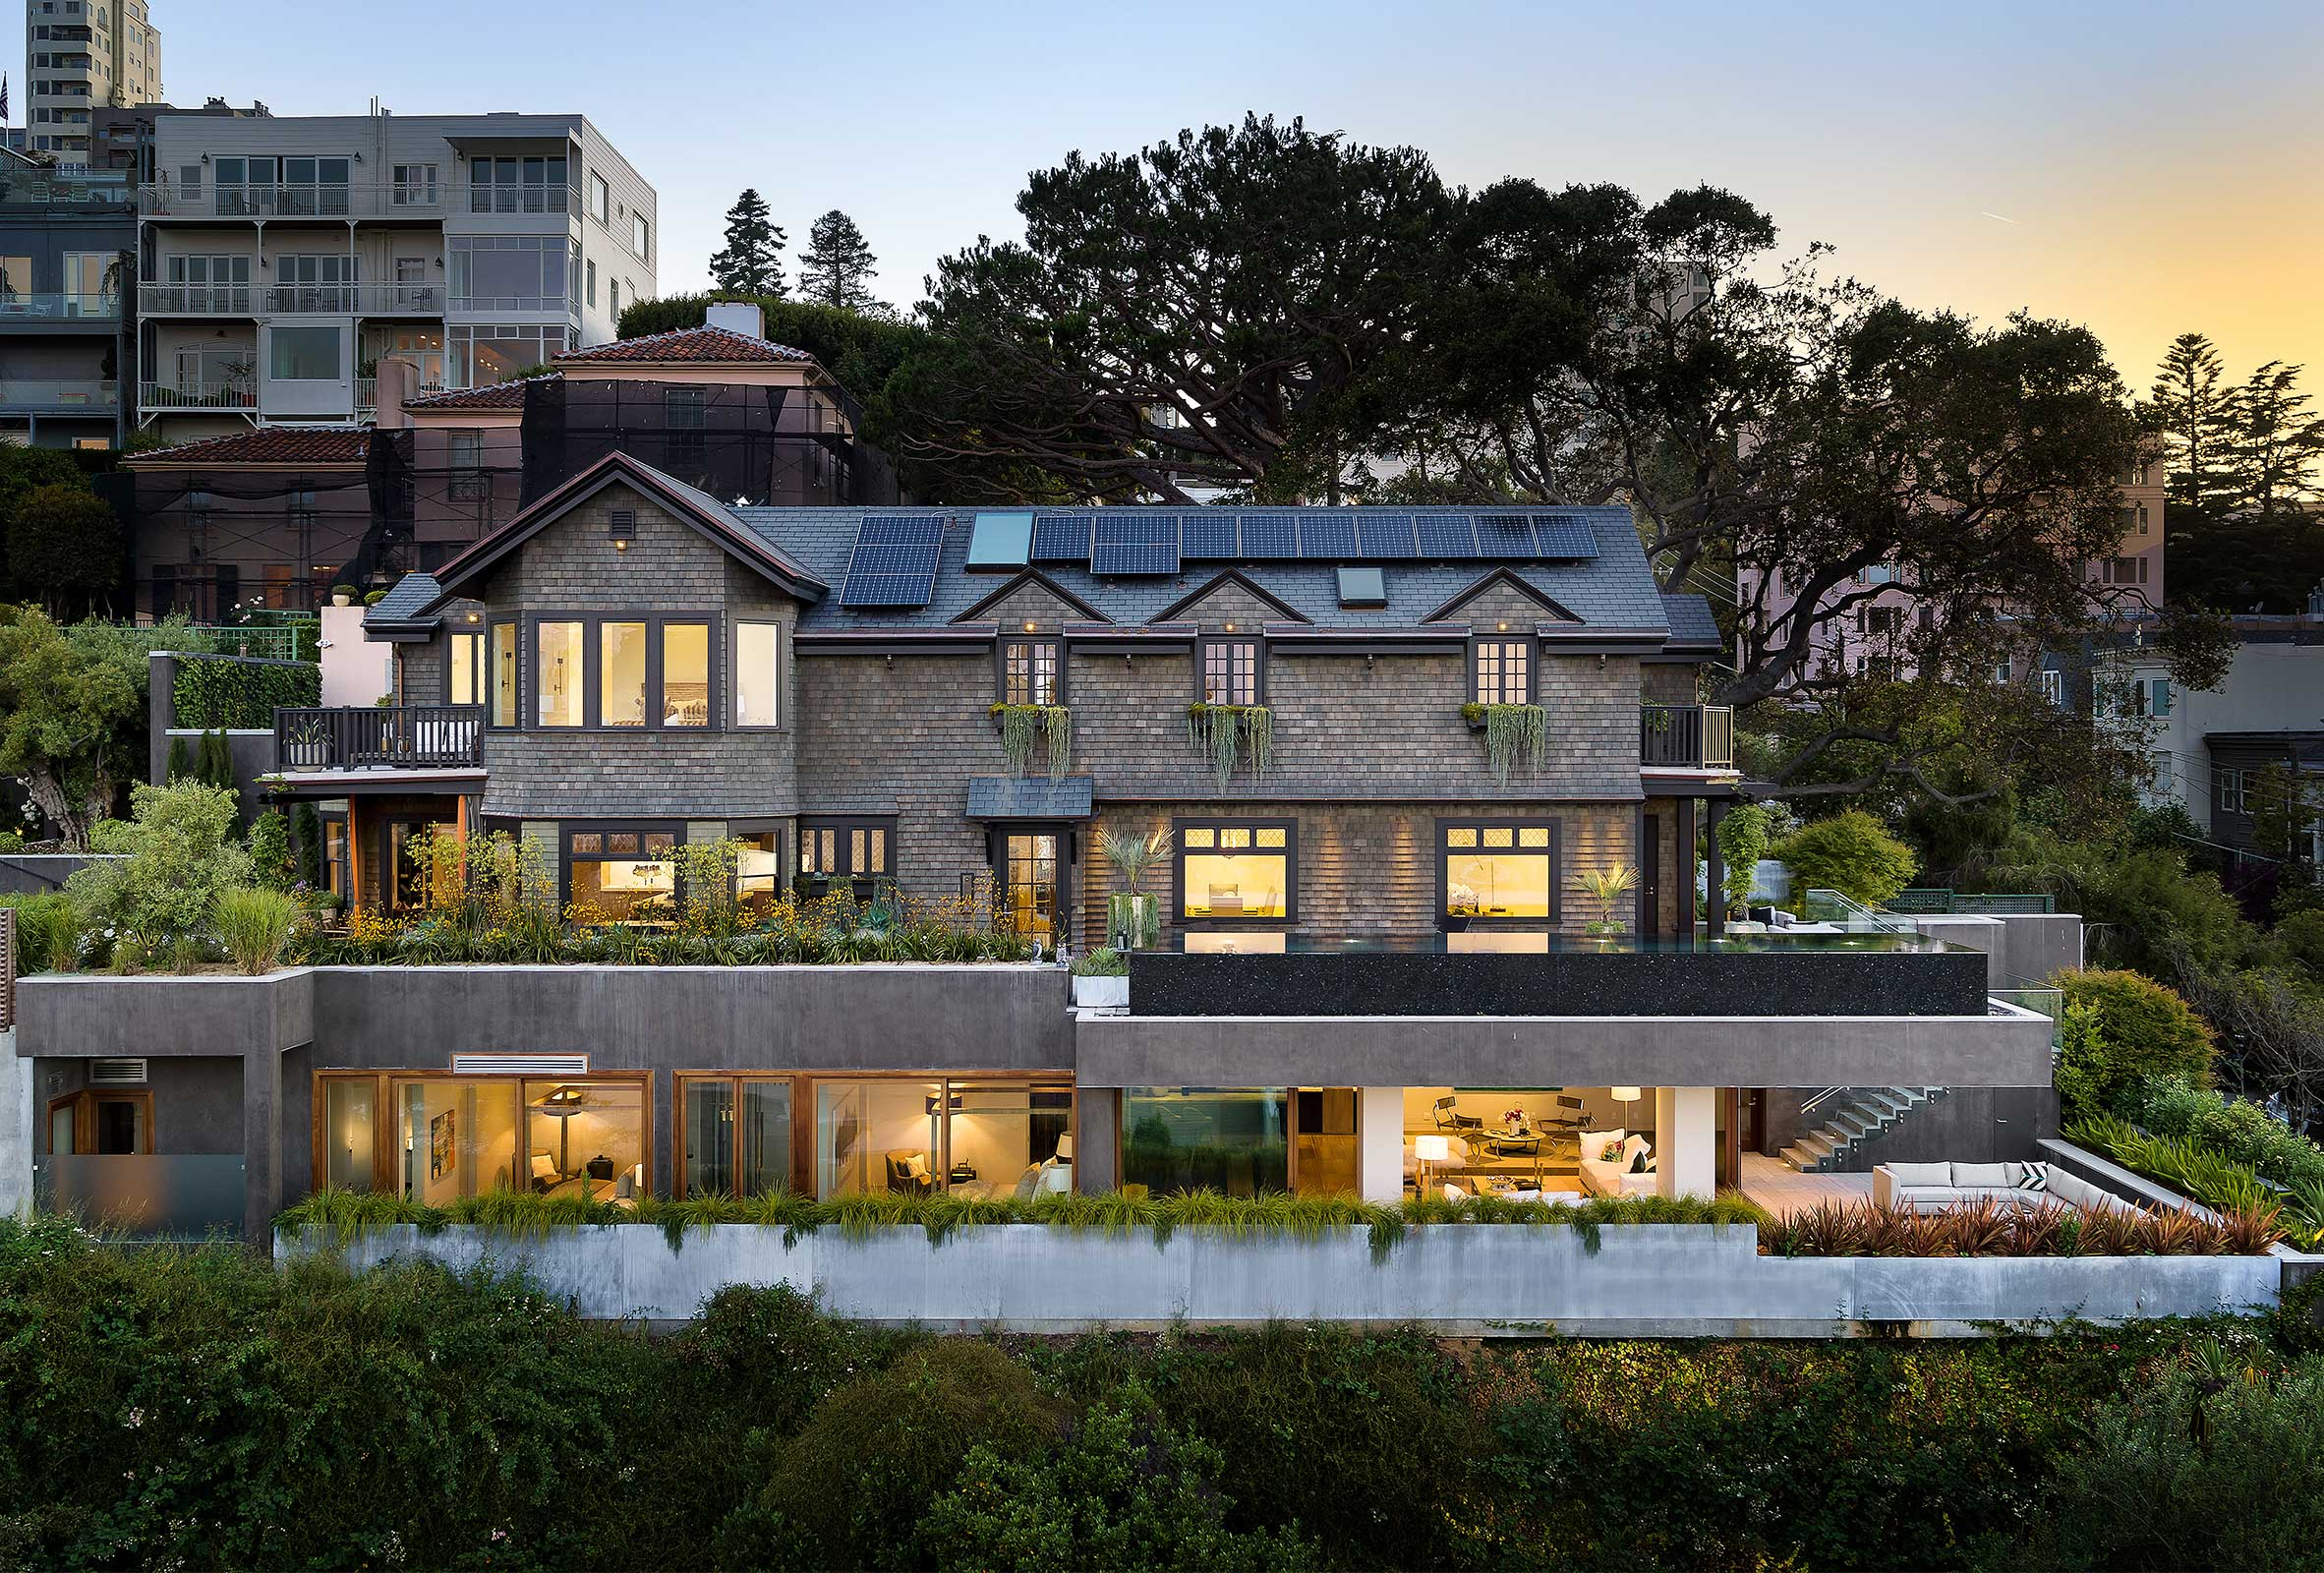 950 Residence Profile on San Francisco Hillside with Dramatic Cantilevers at Sunset